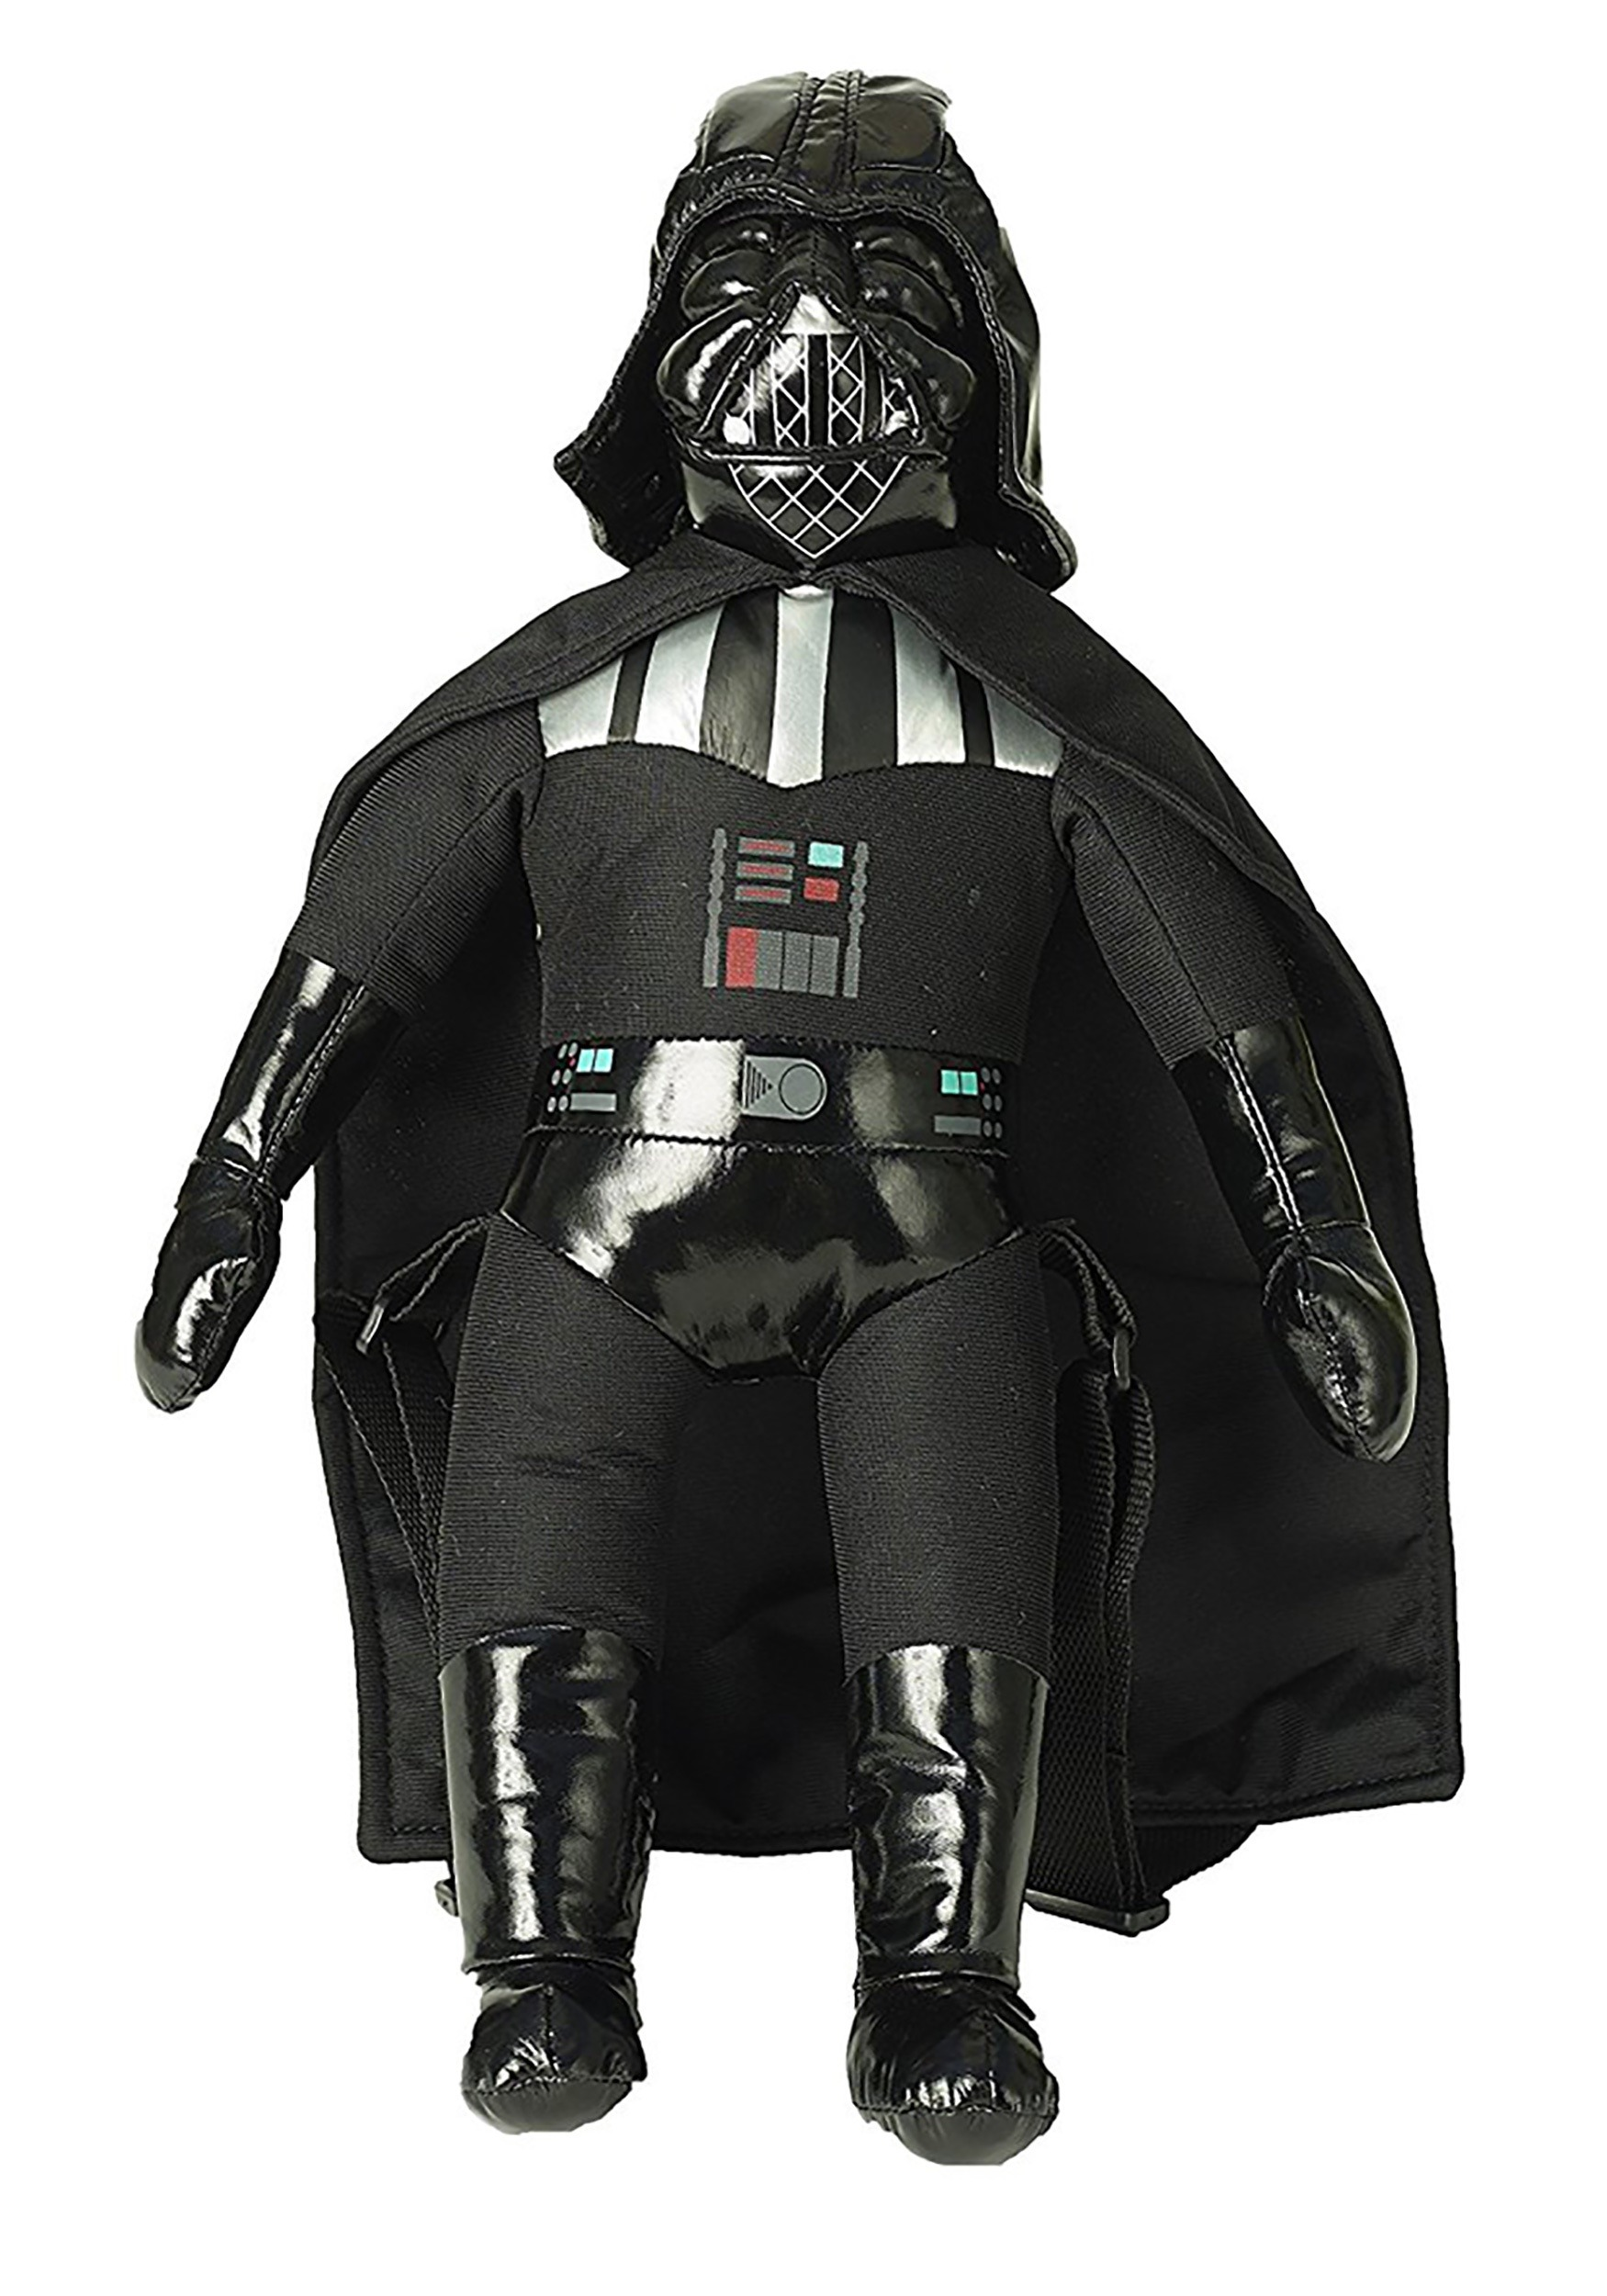 Star Wars Darth Vader Stuffed Figure 17 Backpack